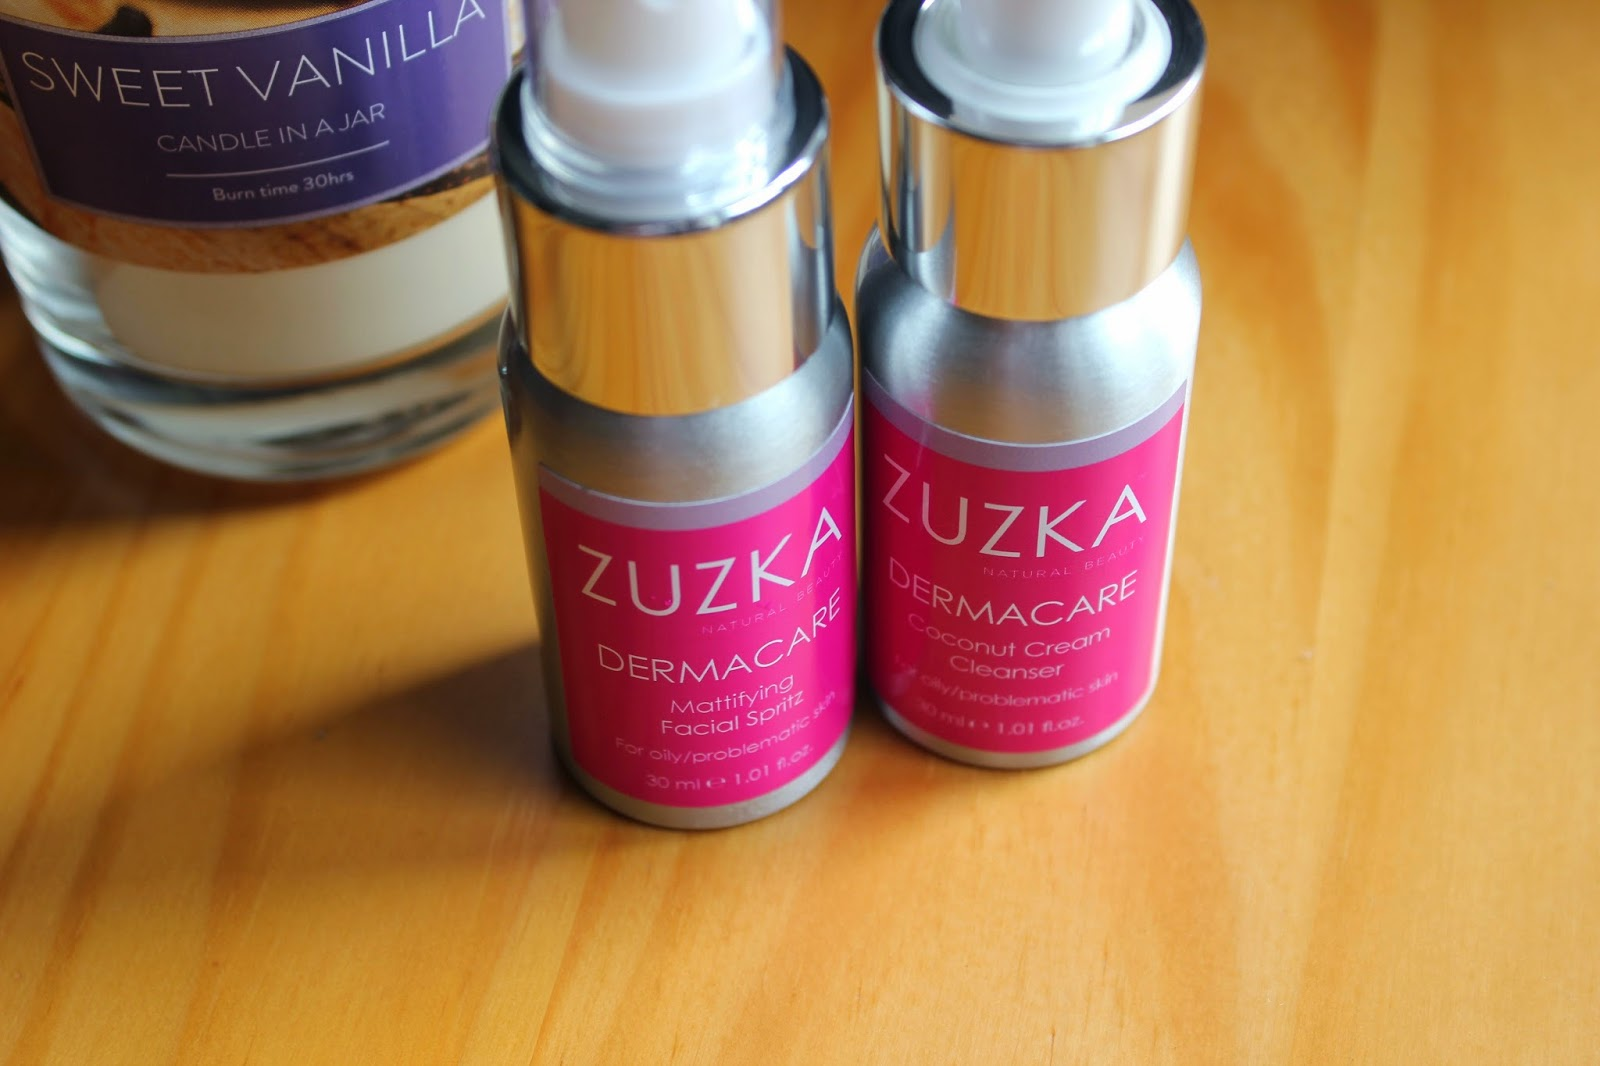 beauty-bbloggers-bloggers-zuzka-review-skincare-dermalogical-skin-products-cleanser